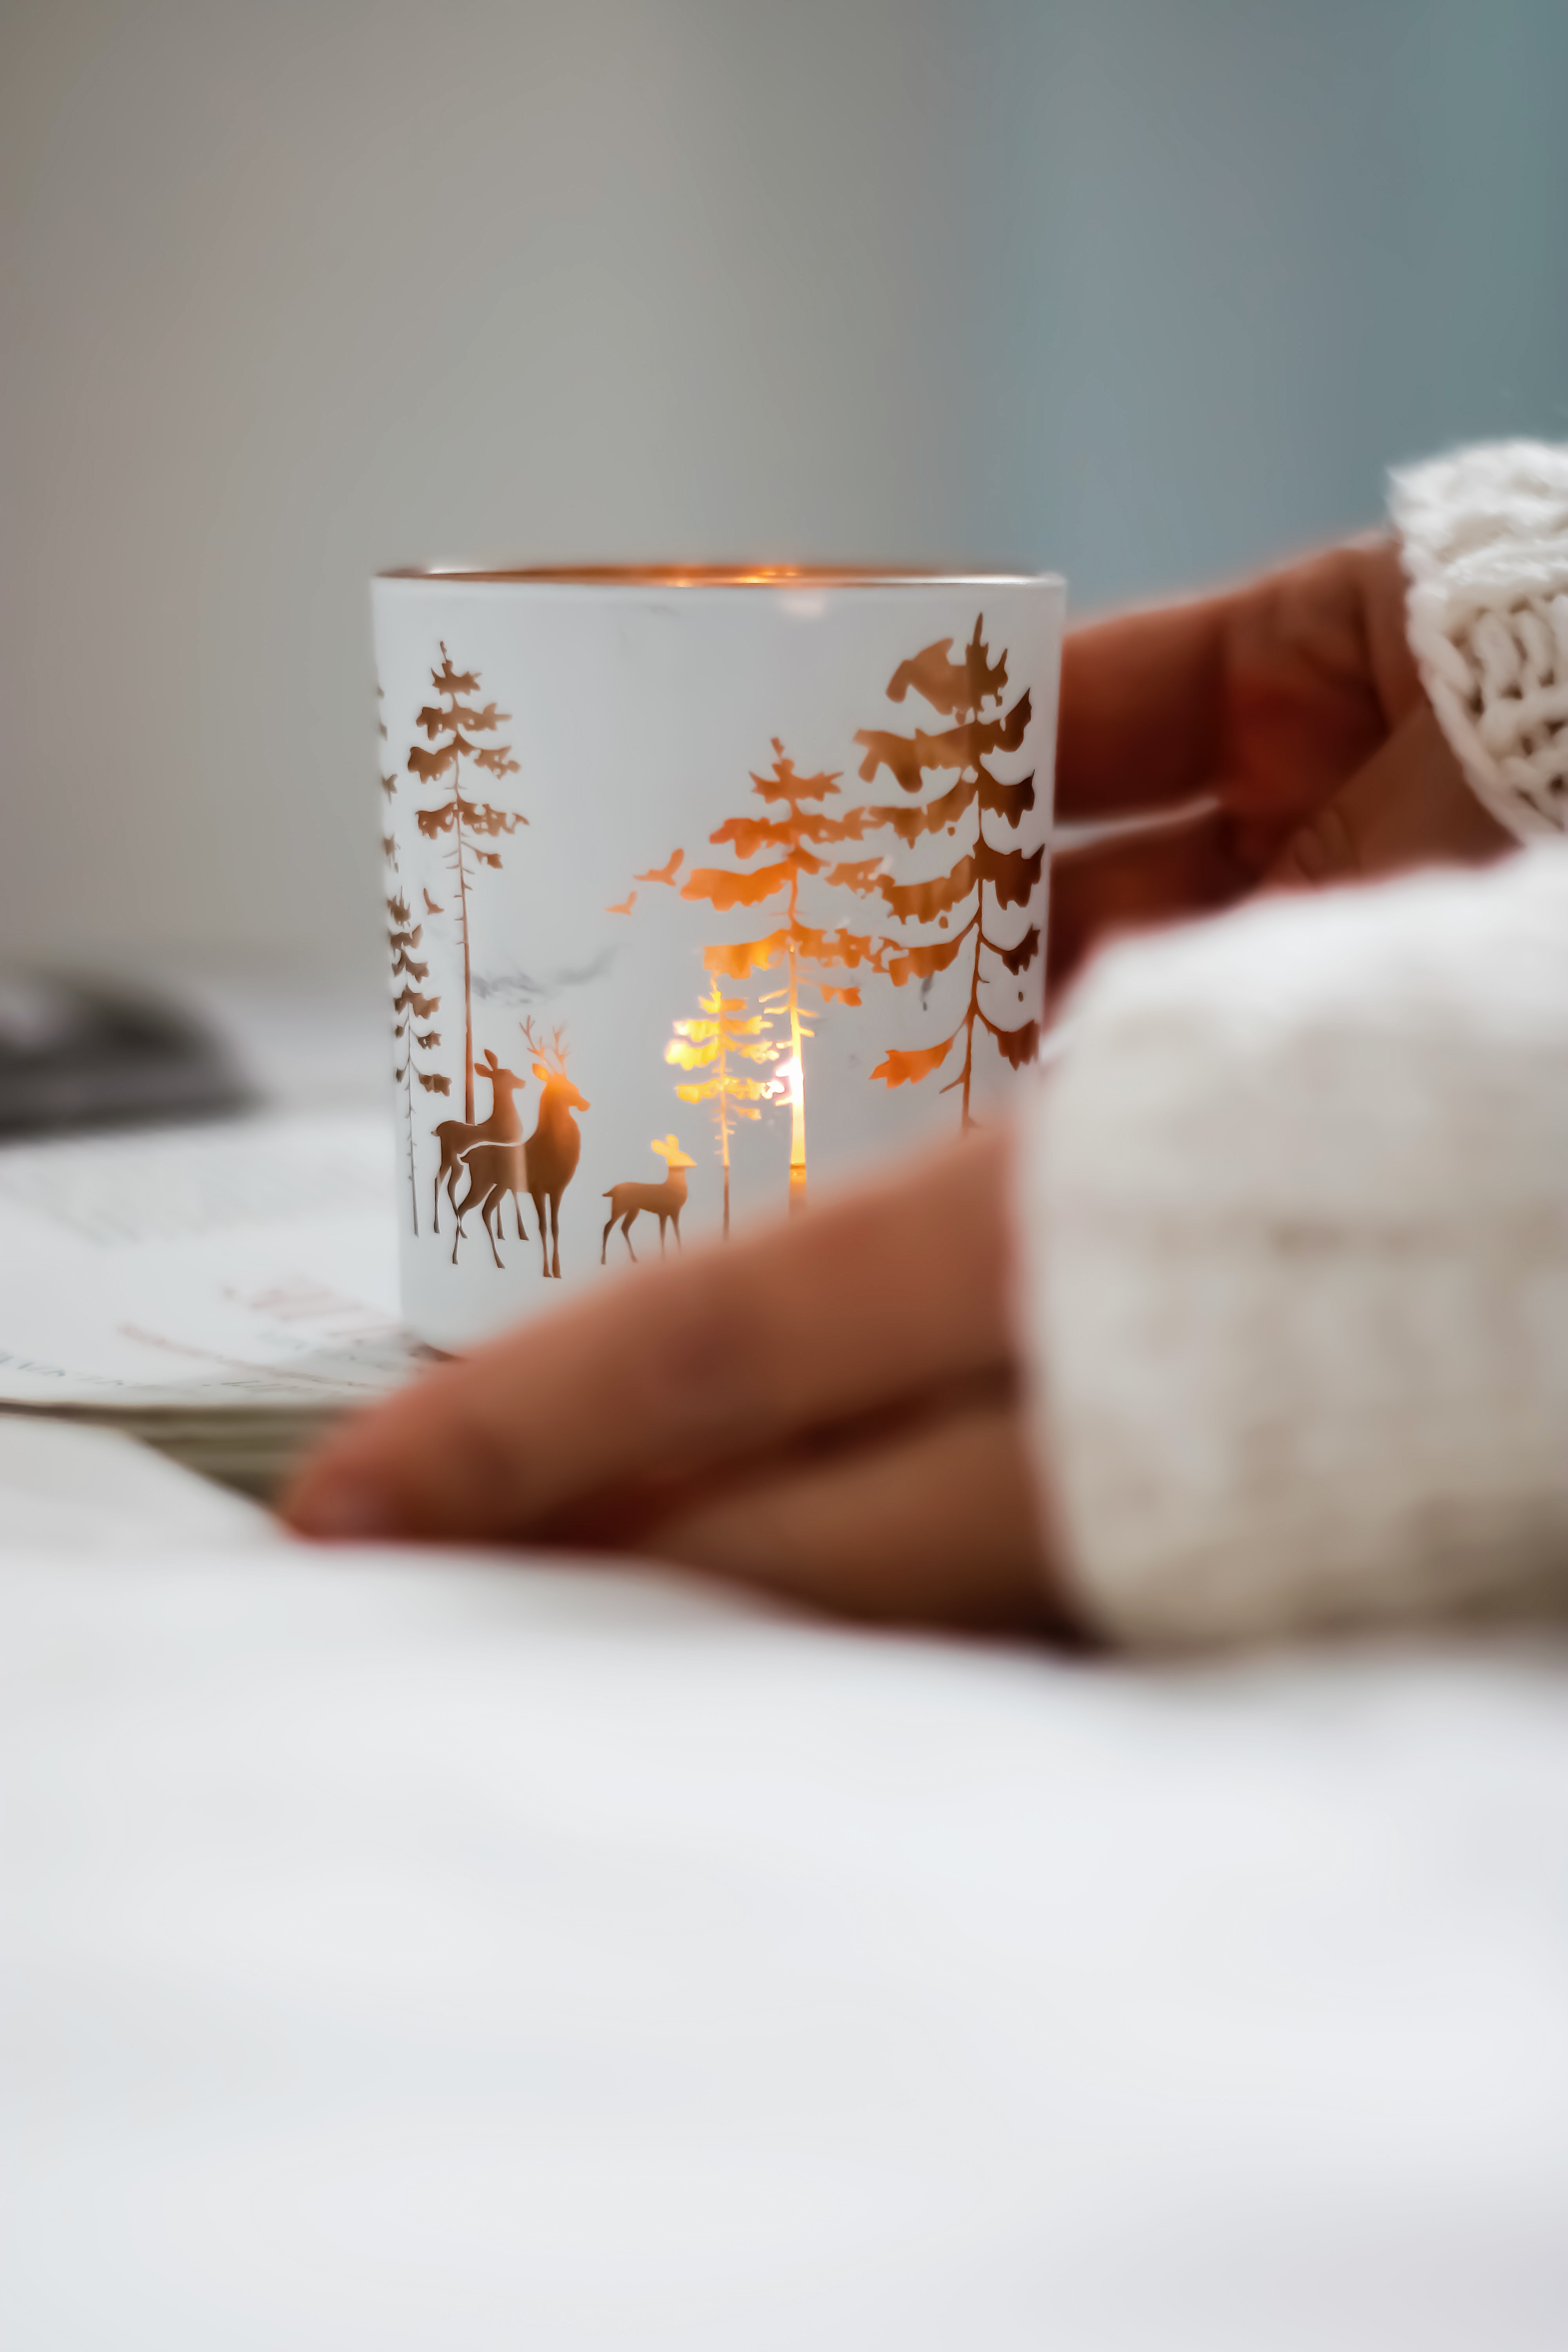 58934 download wallpaper Miscellanea, Miscellaneous, Cup, Mug, Deers, Trees, Decoration screensavers and pictures for free